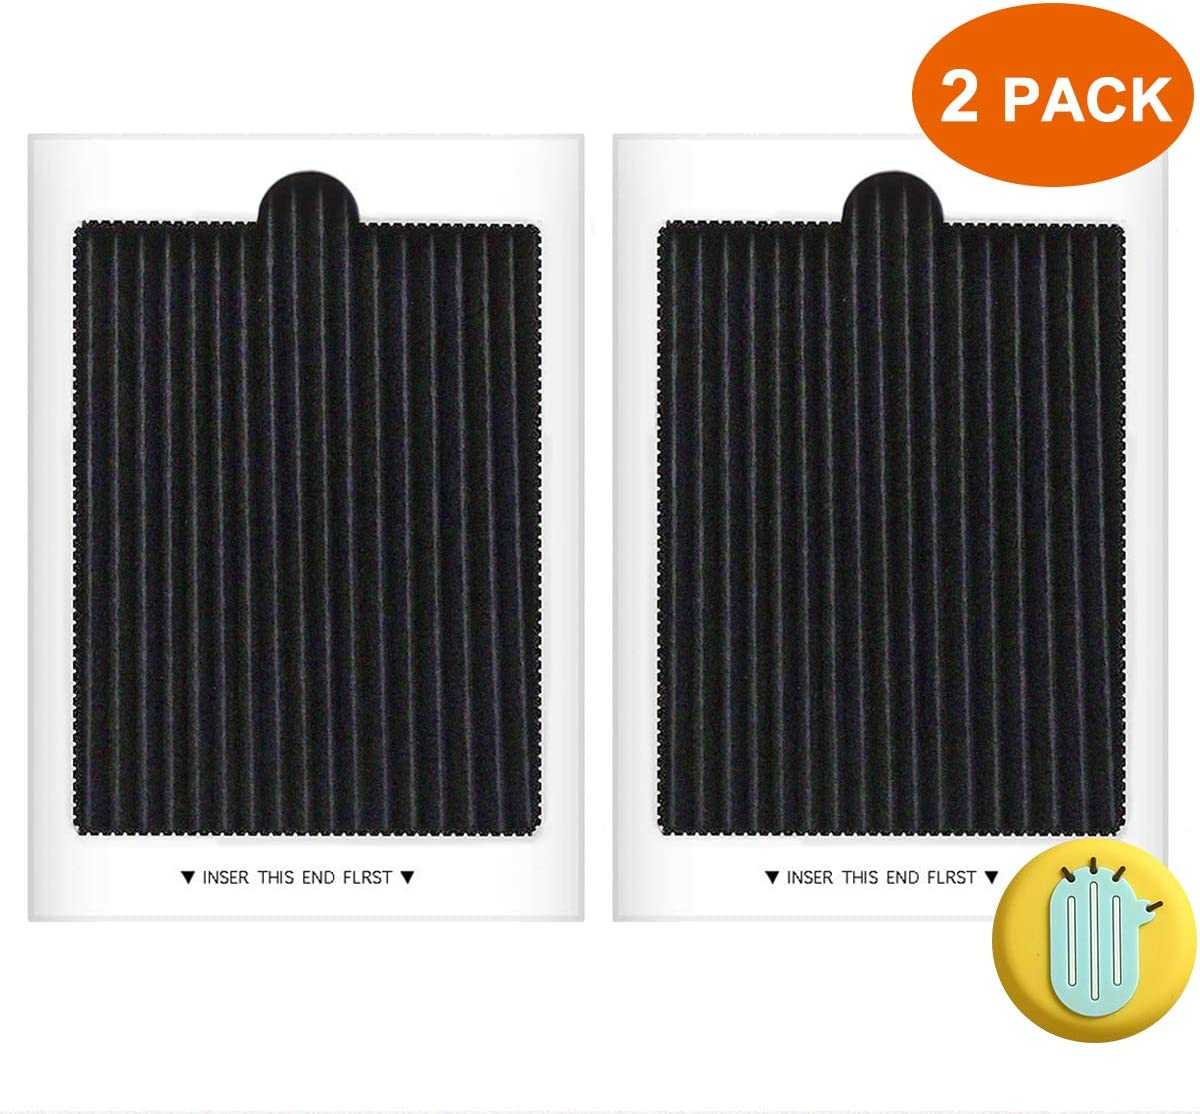 Refrigerator Air Filter Replacement Compatible with Frigidaire PAULTRA, SCPUREAIR2PK, Electrolux EAFCBF (2 PCS)